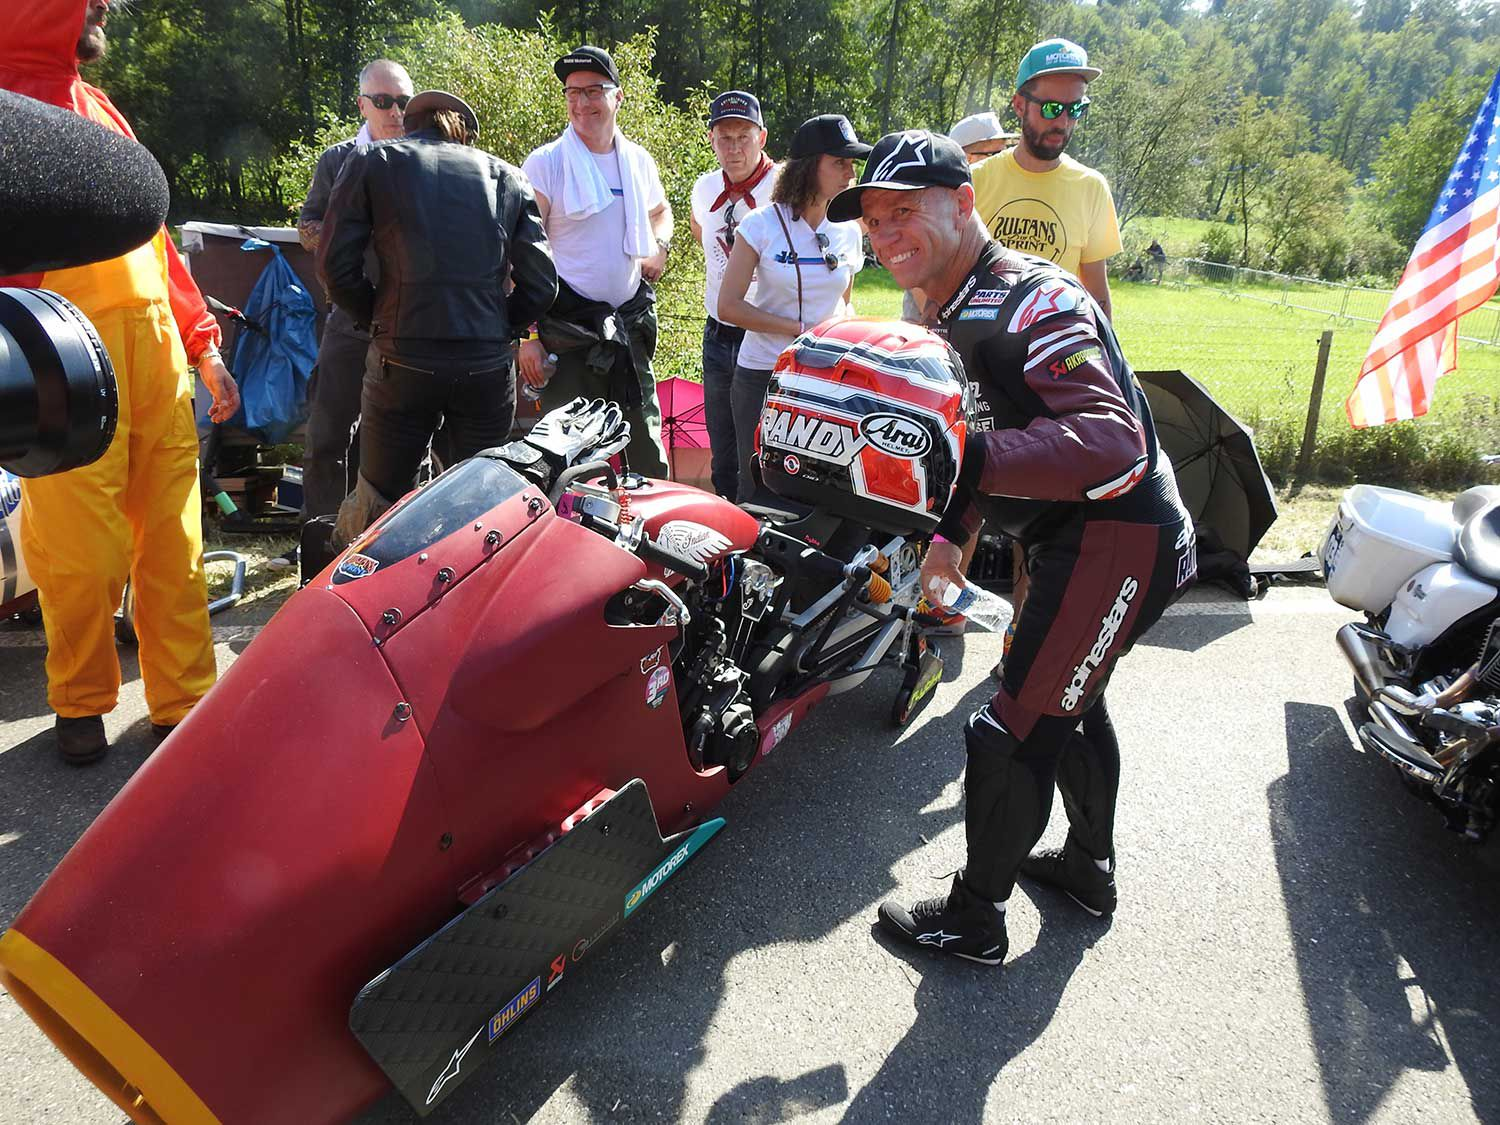 """Randy Mamola on the Indian """"Appaloosa"""" getting ready for his first race against a supercharged Harley at the Indian Sprints."""